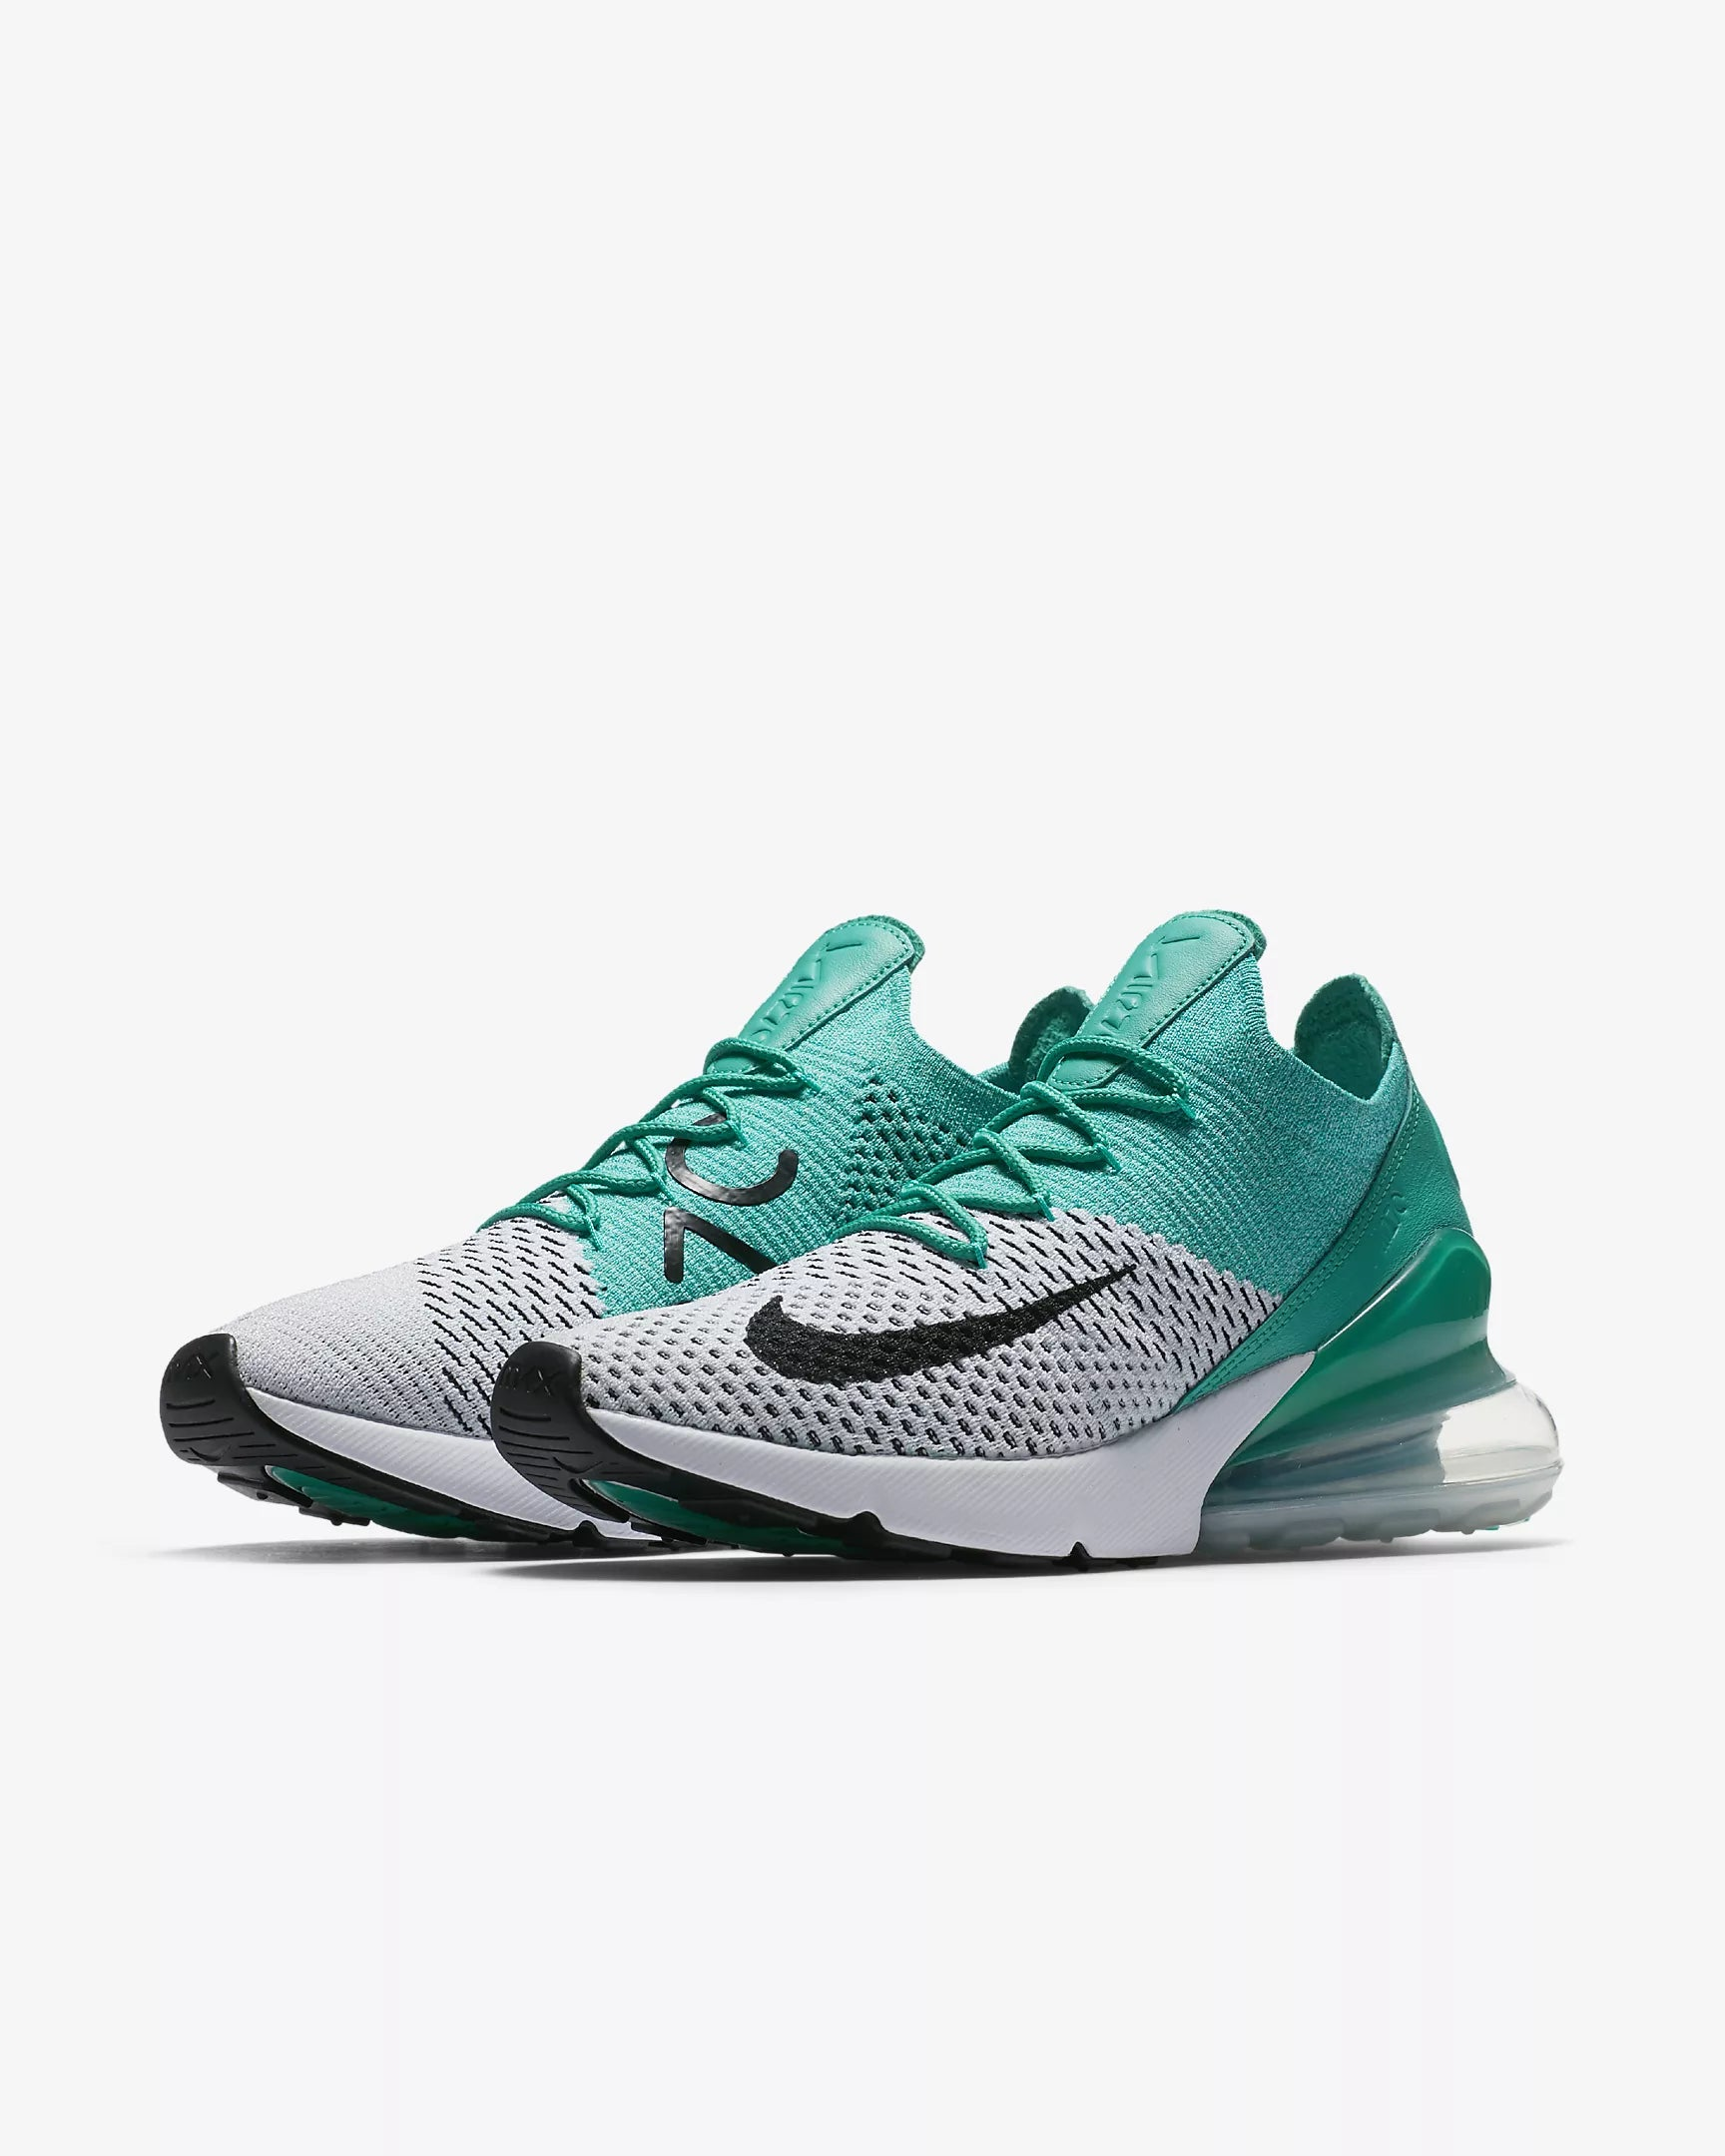 nike air max 270 flyknit turquoise